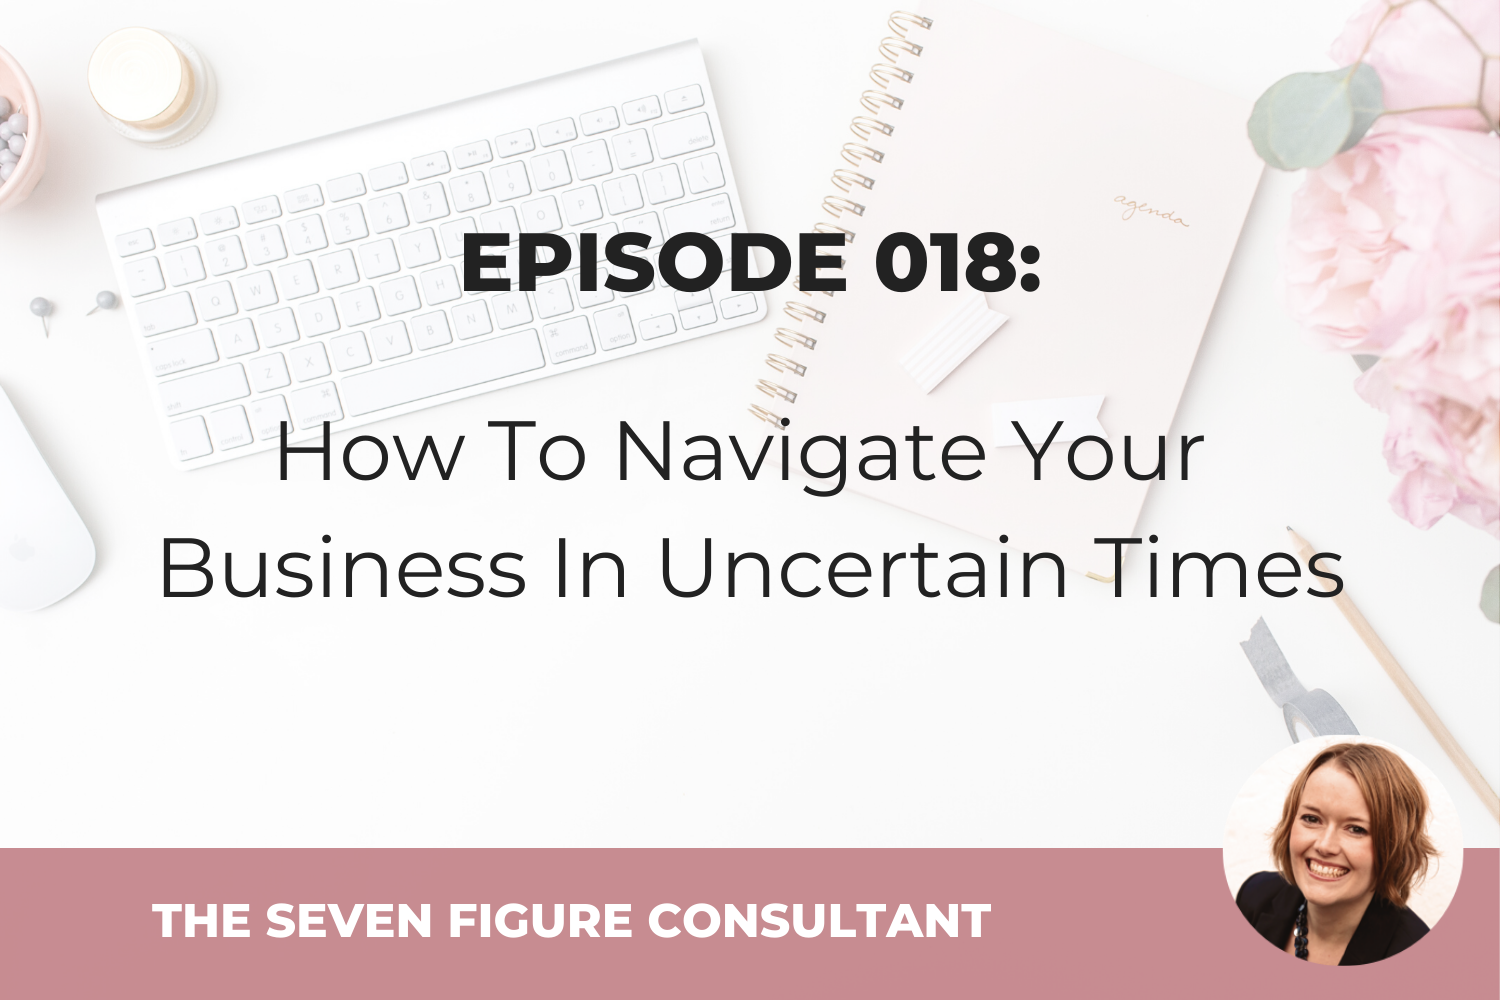 Episode 018: How To Navigate Your Business In Uncertain Times